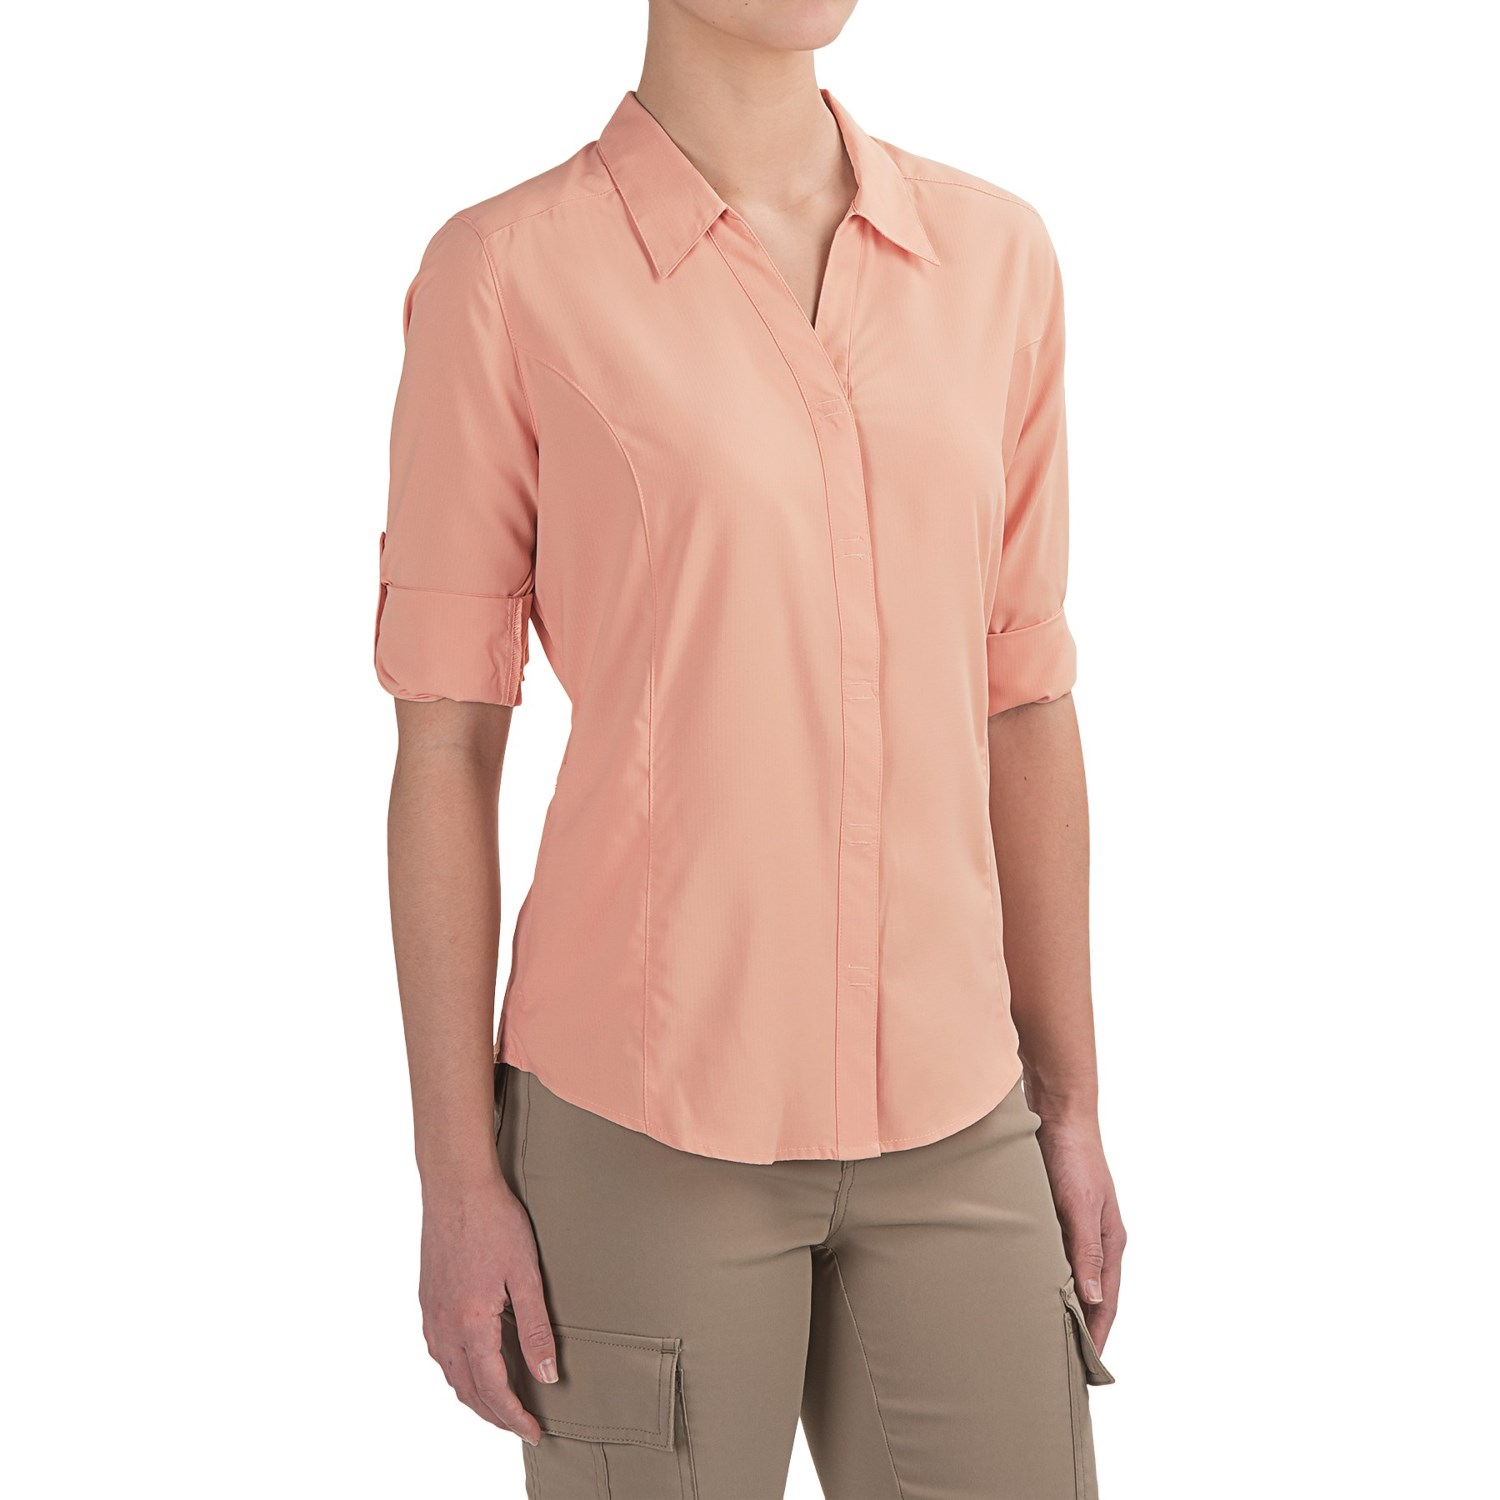 Royal robbins expedition shirt for women save 63 for Royal robbins expedition shirt 3 4 sleeve women s